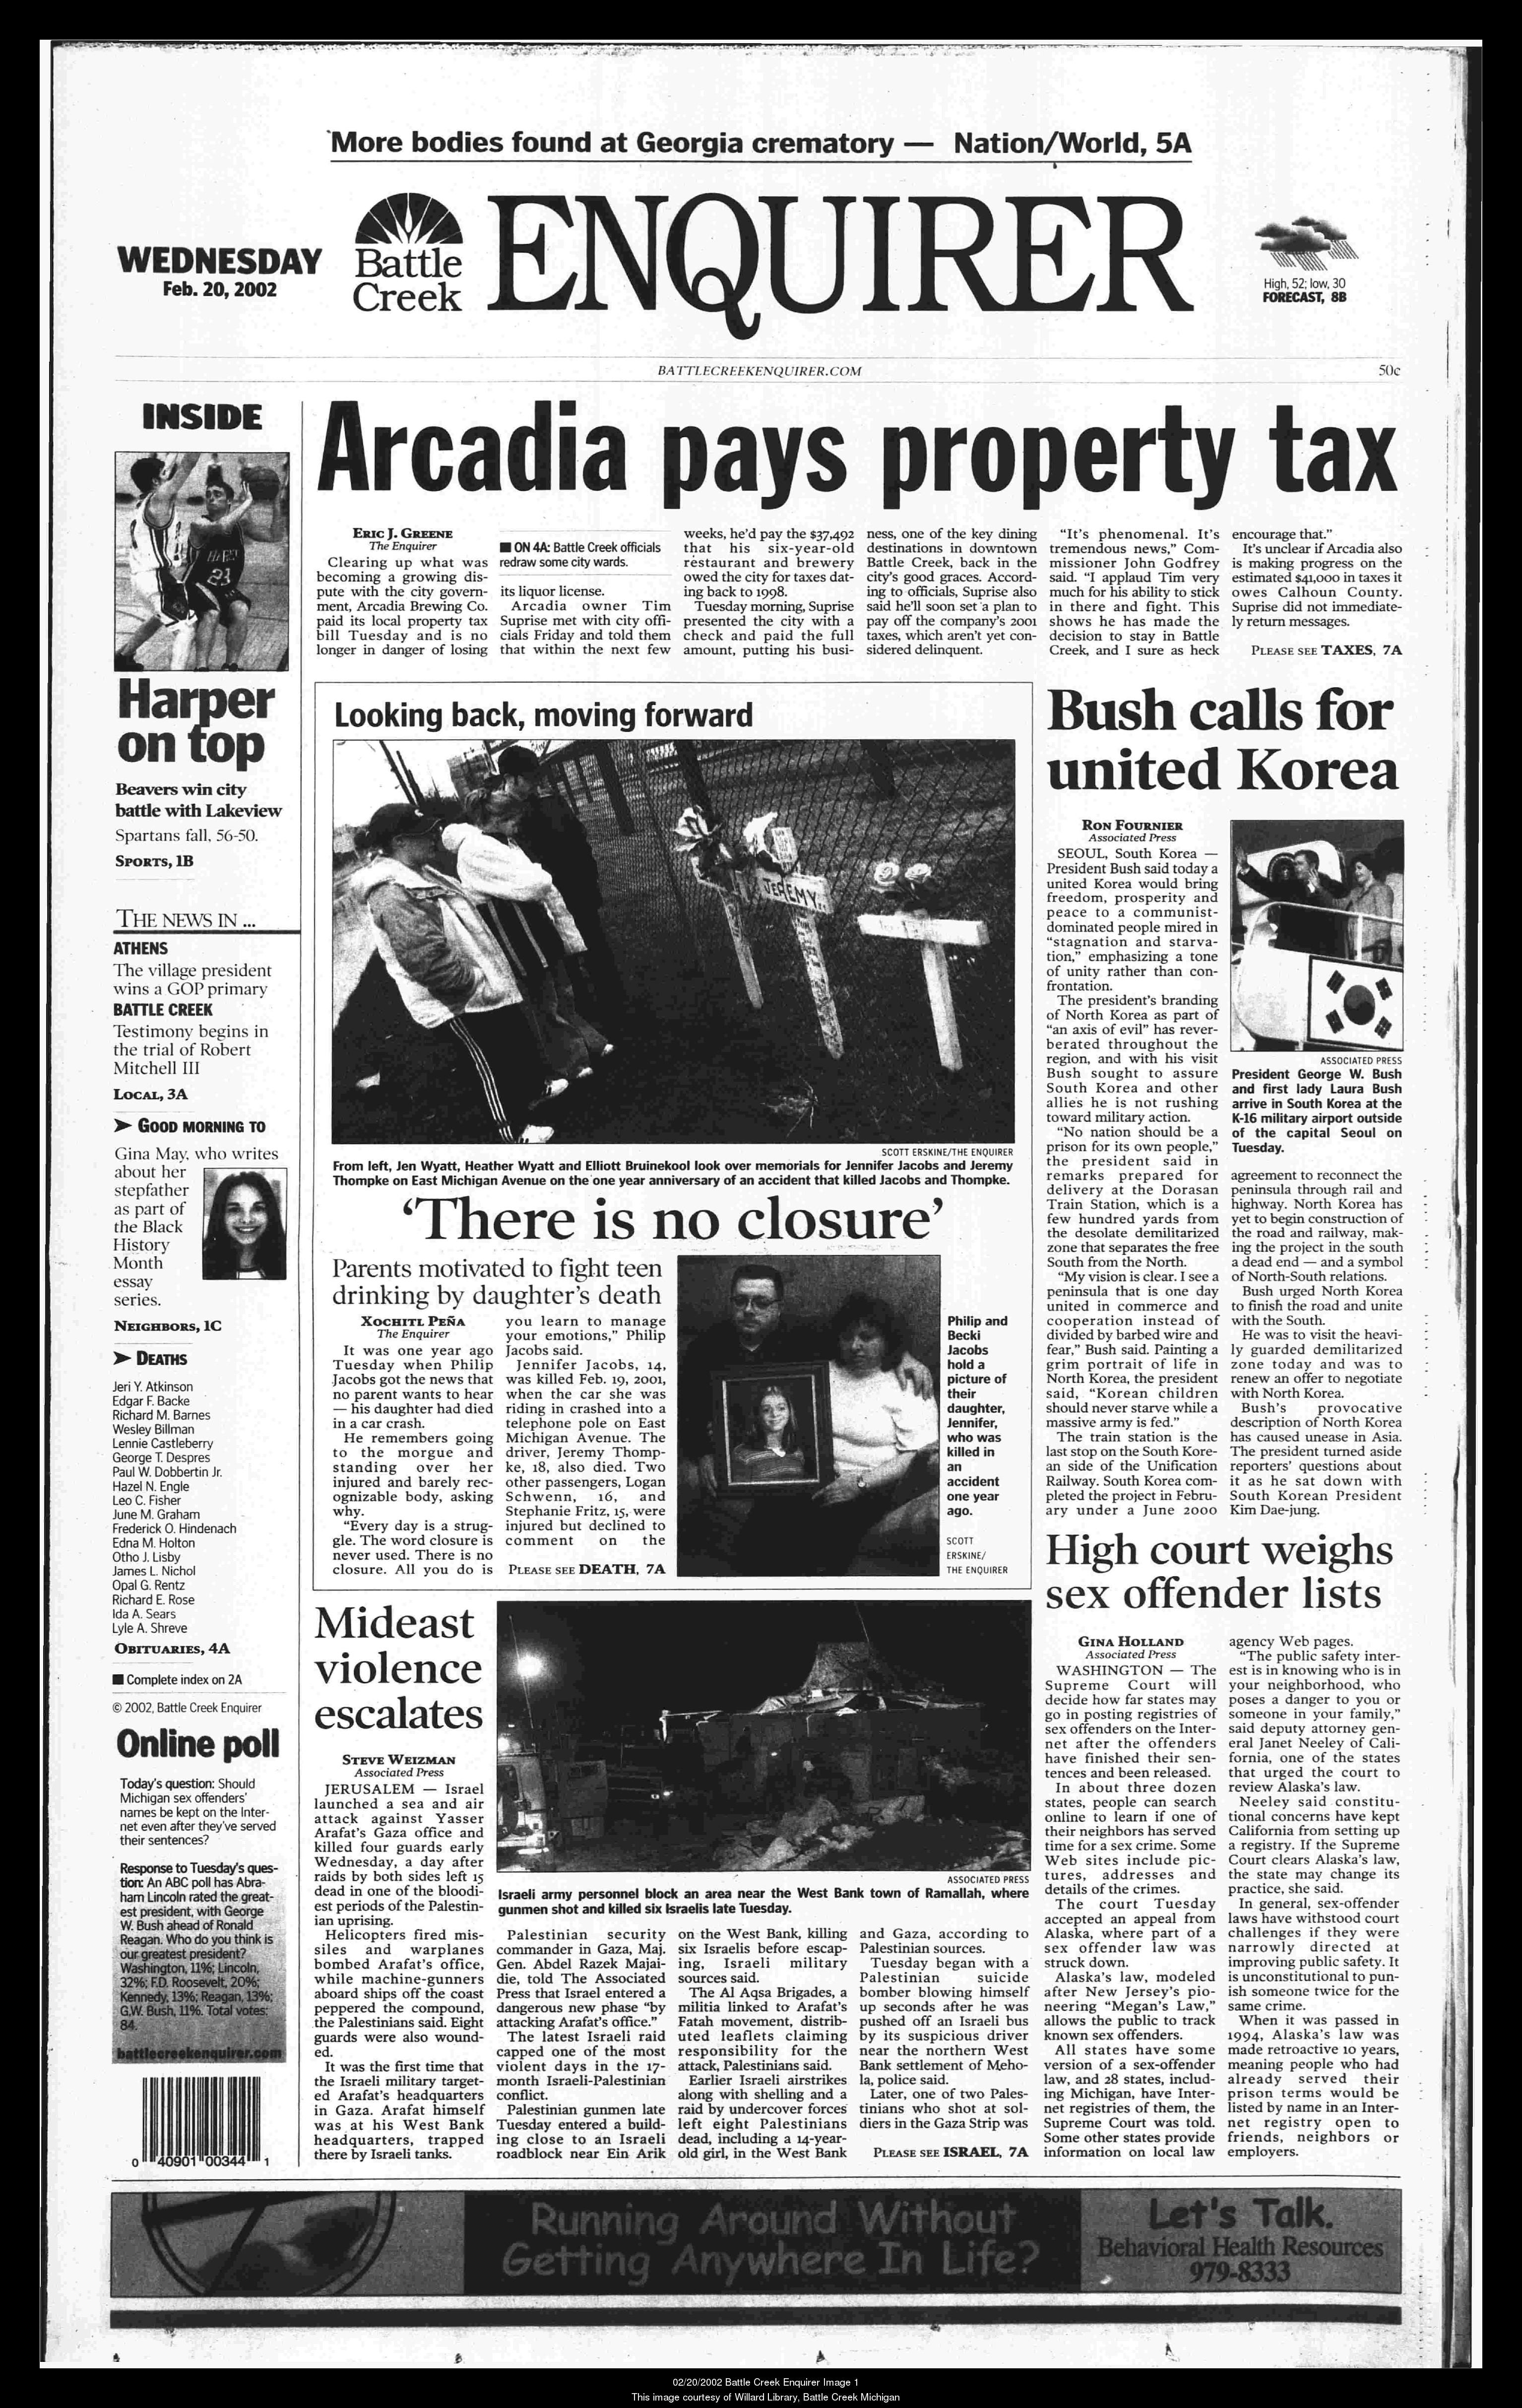 Clayton County Tax Commissioner Property Tax